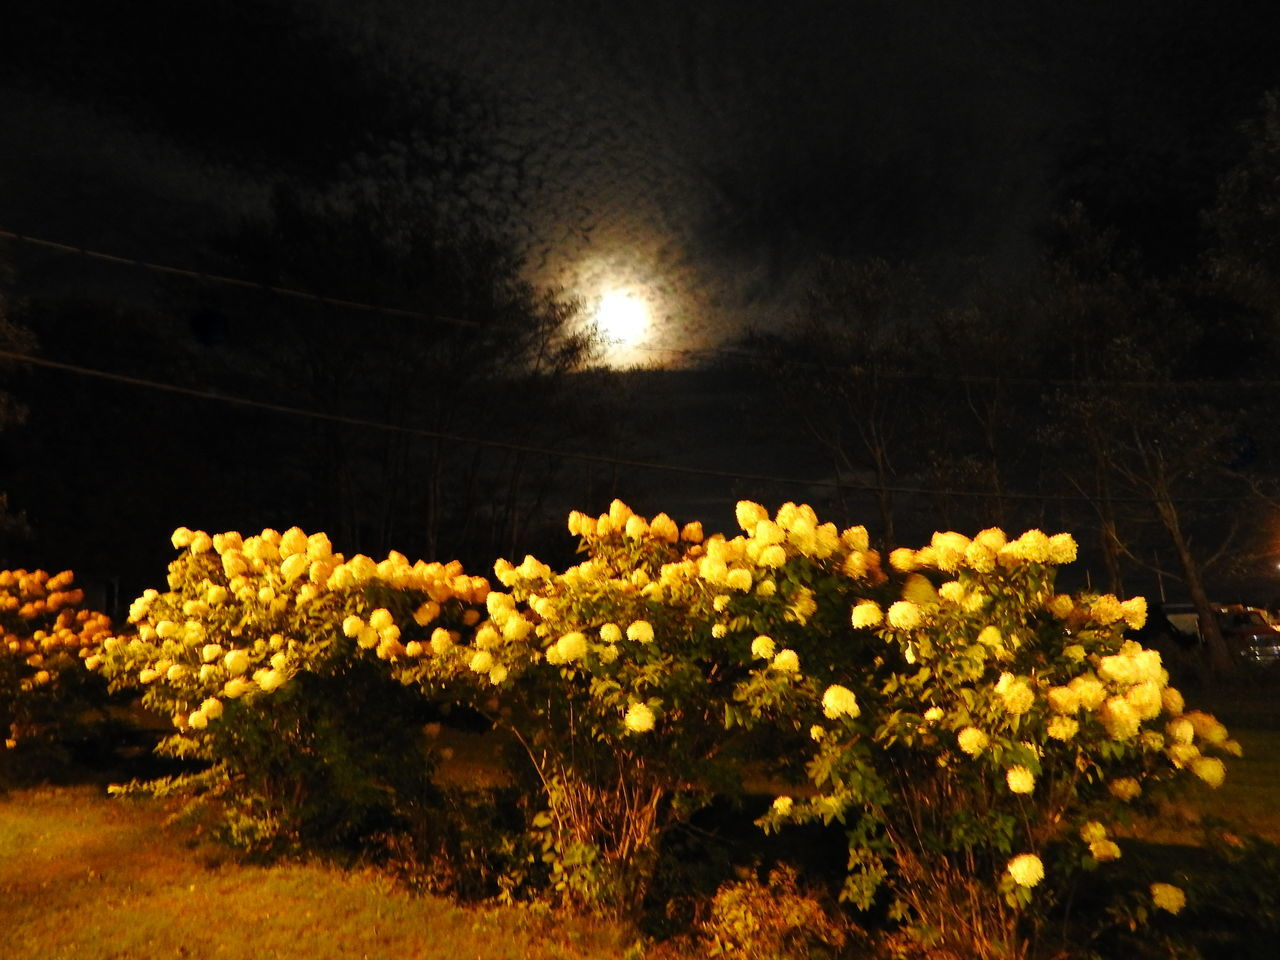 flower, beauty in nature, nature, growth, yellow, night, plant, no people, outdoors, tranquility, scenics, fragility, illuminated, freshness, flower head, sky